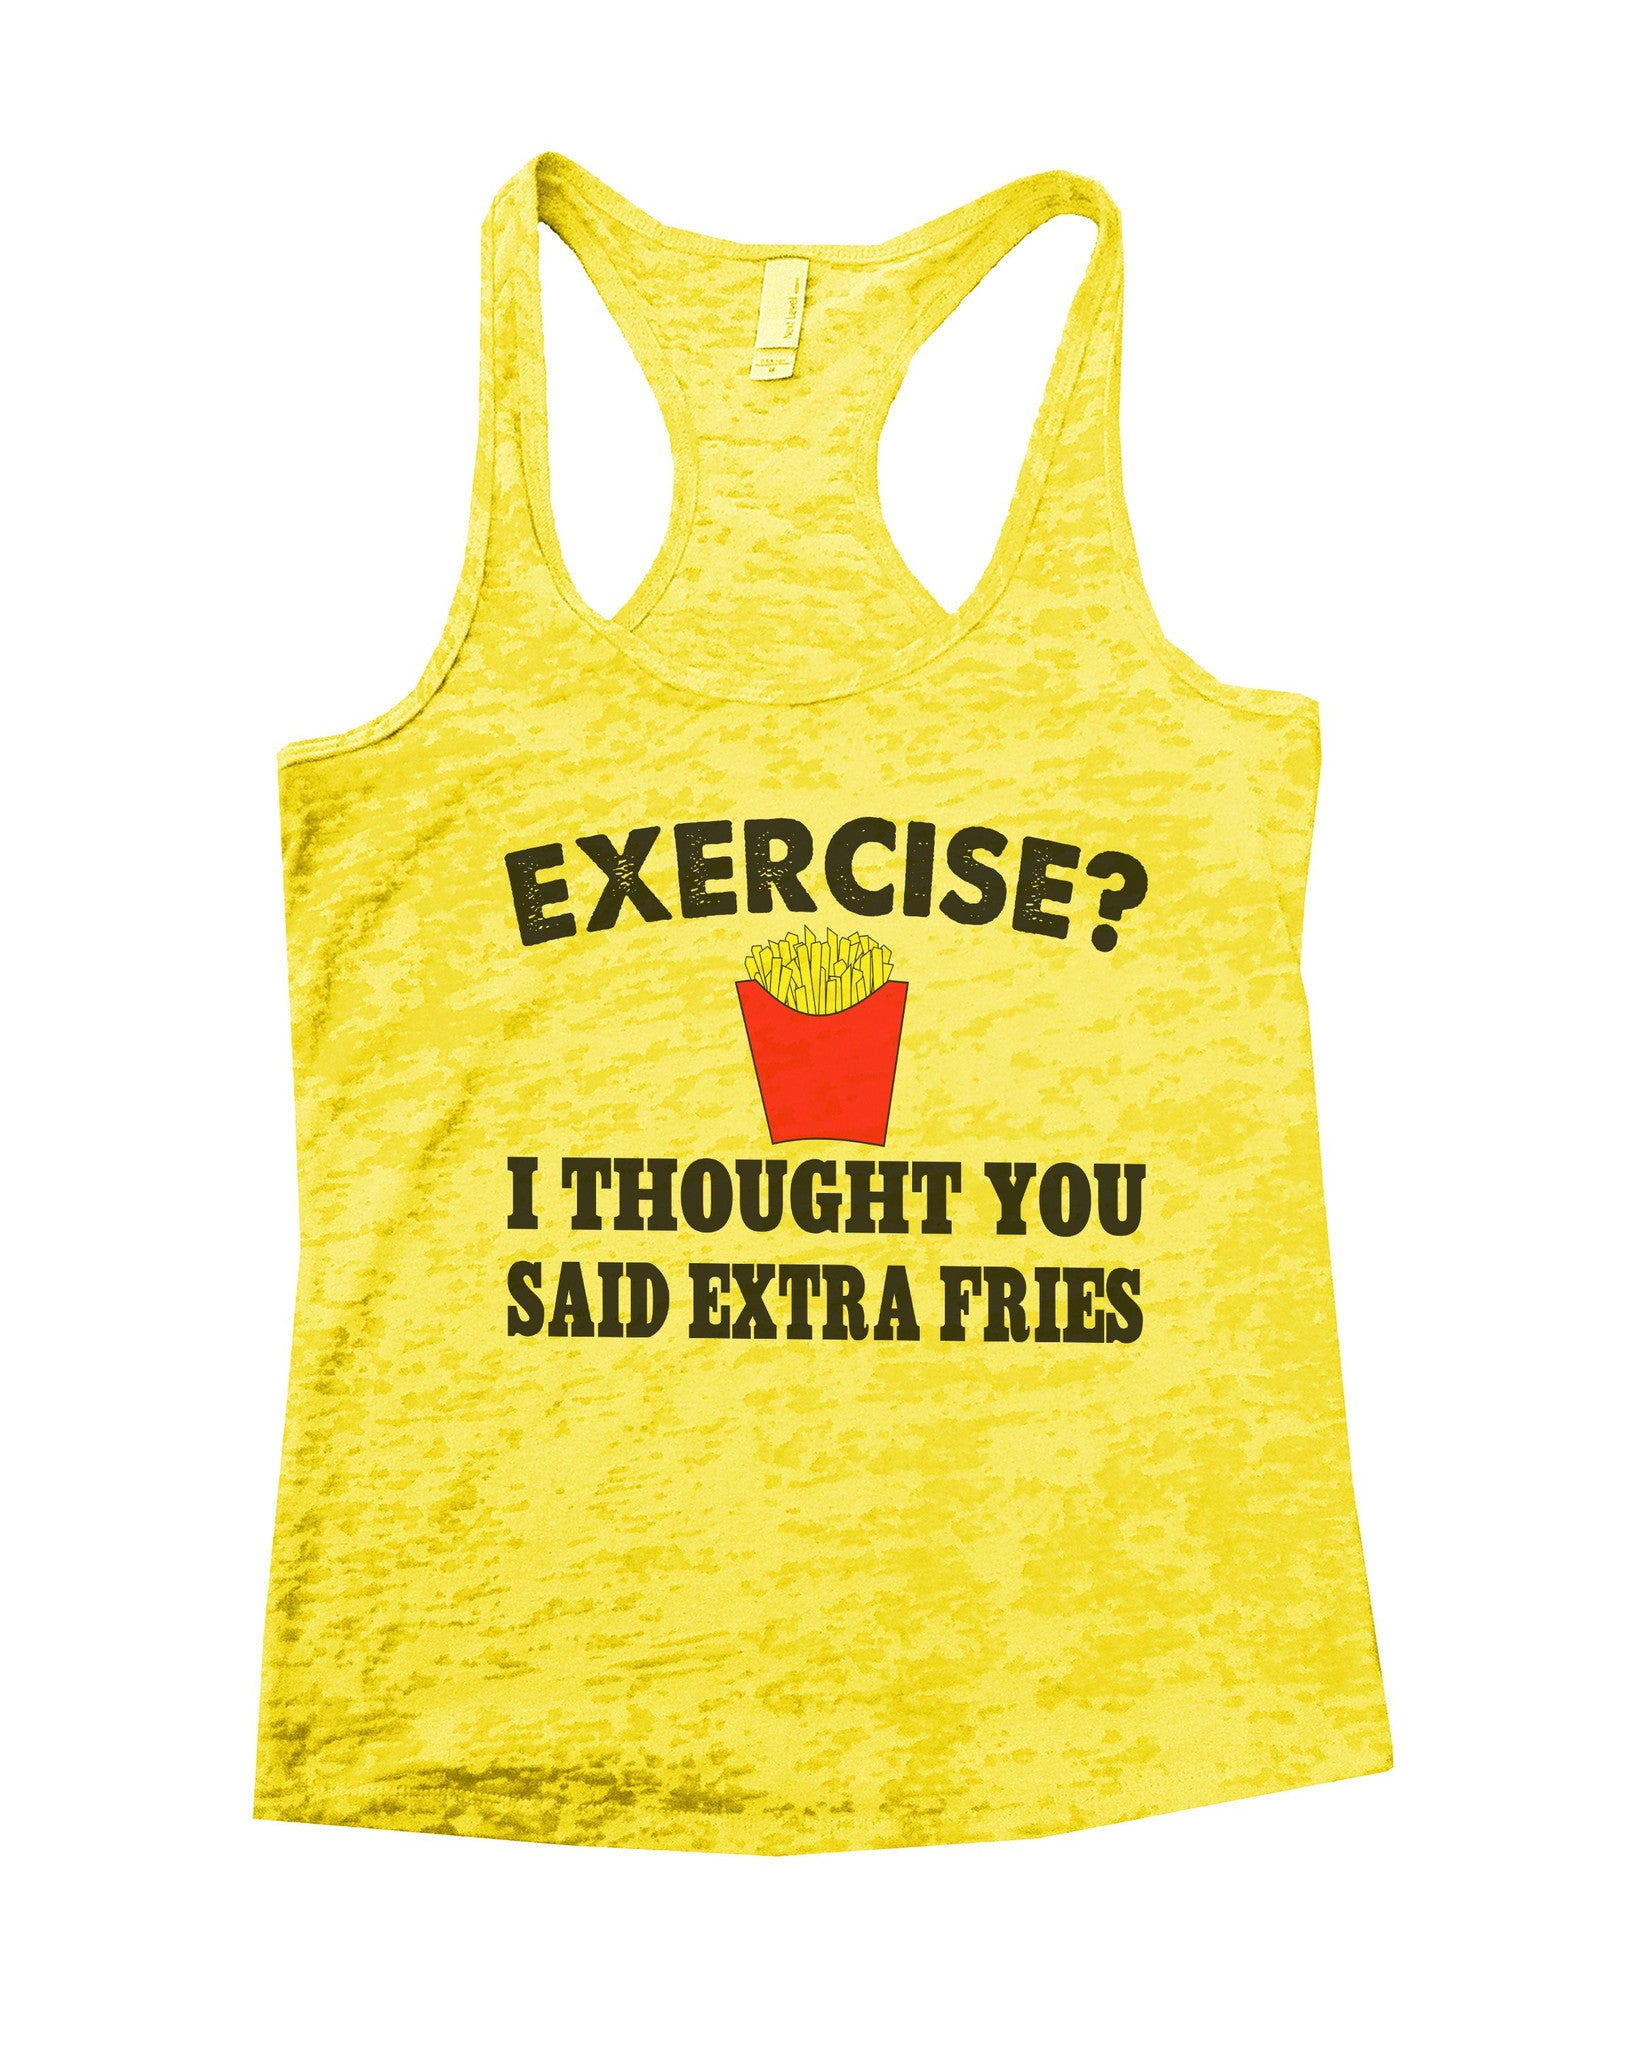 Exercise? I Thought You Said Extra Fries Burnout Tank Top By BurnoutTankTops.com - B32 - Funny Shirts Tank Tops Burnouts and Triblends  - 6